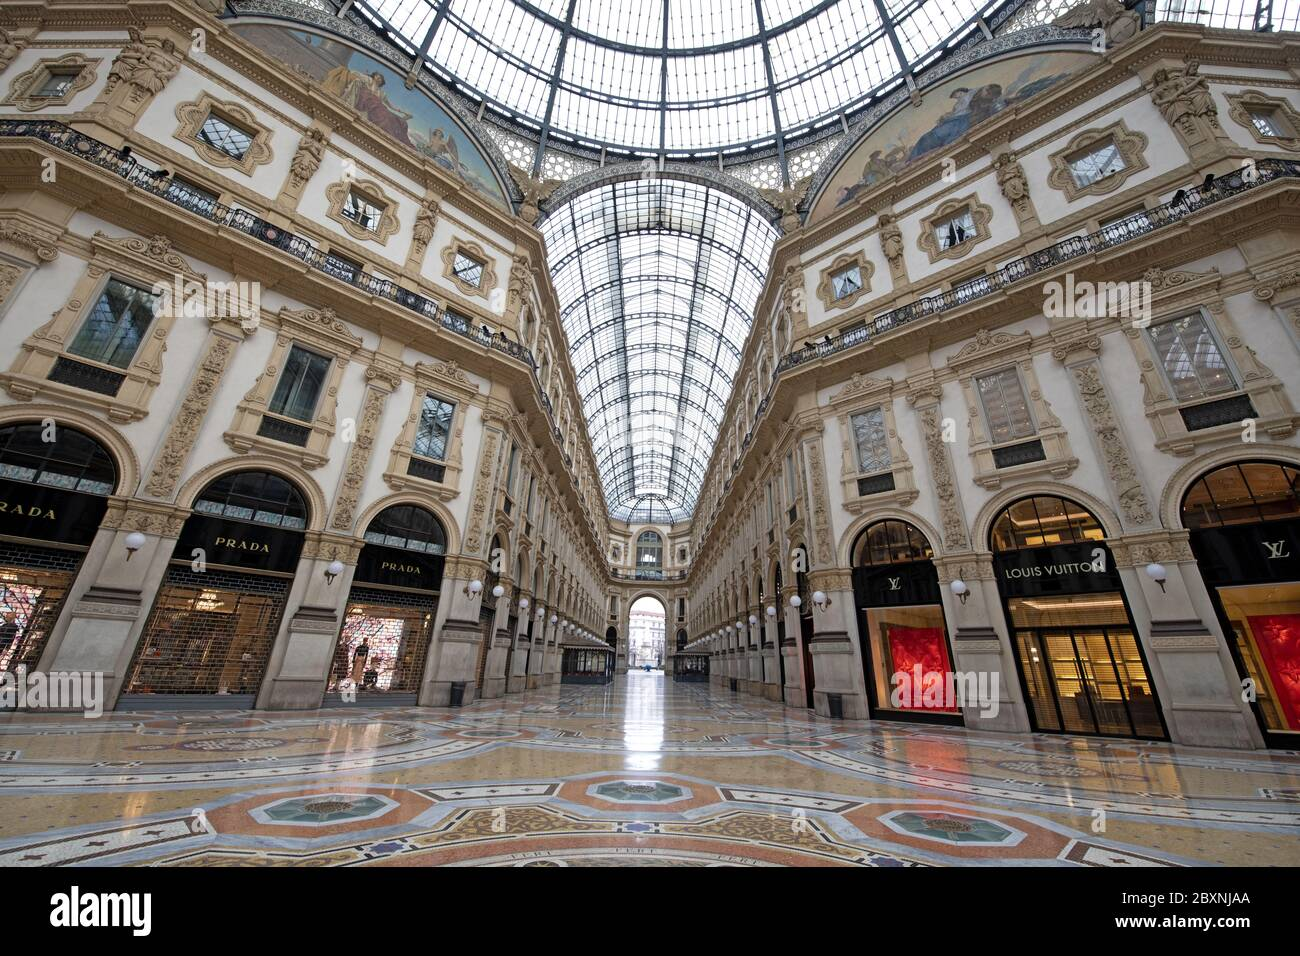 The emptiness of Galleria Vittorio Emanuele with shops closed during the lockdown caused by the Covid-19 in Milan, Italy. Stock Photo